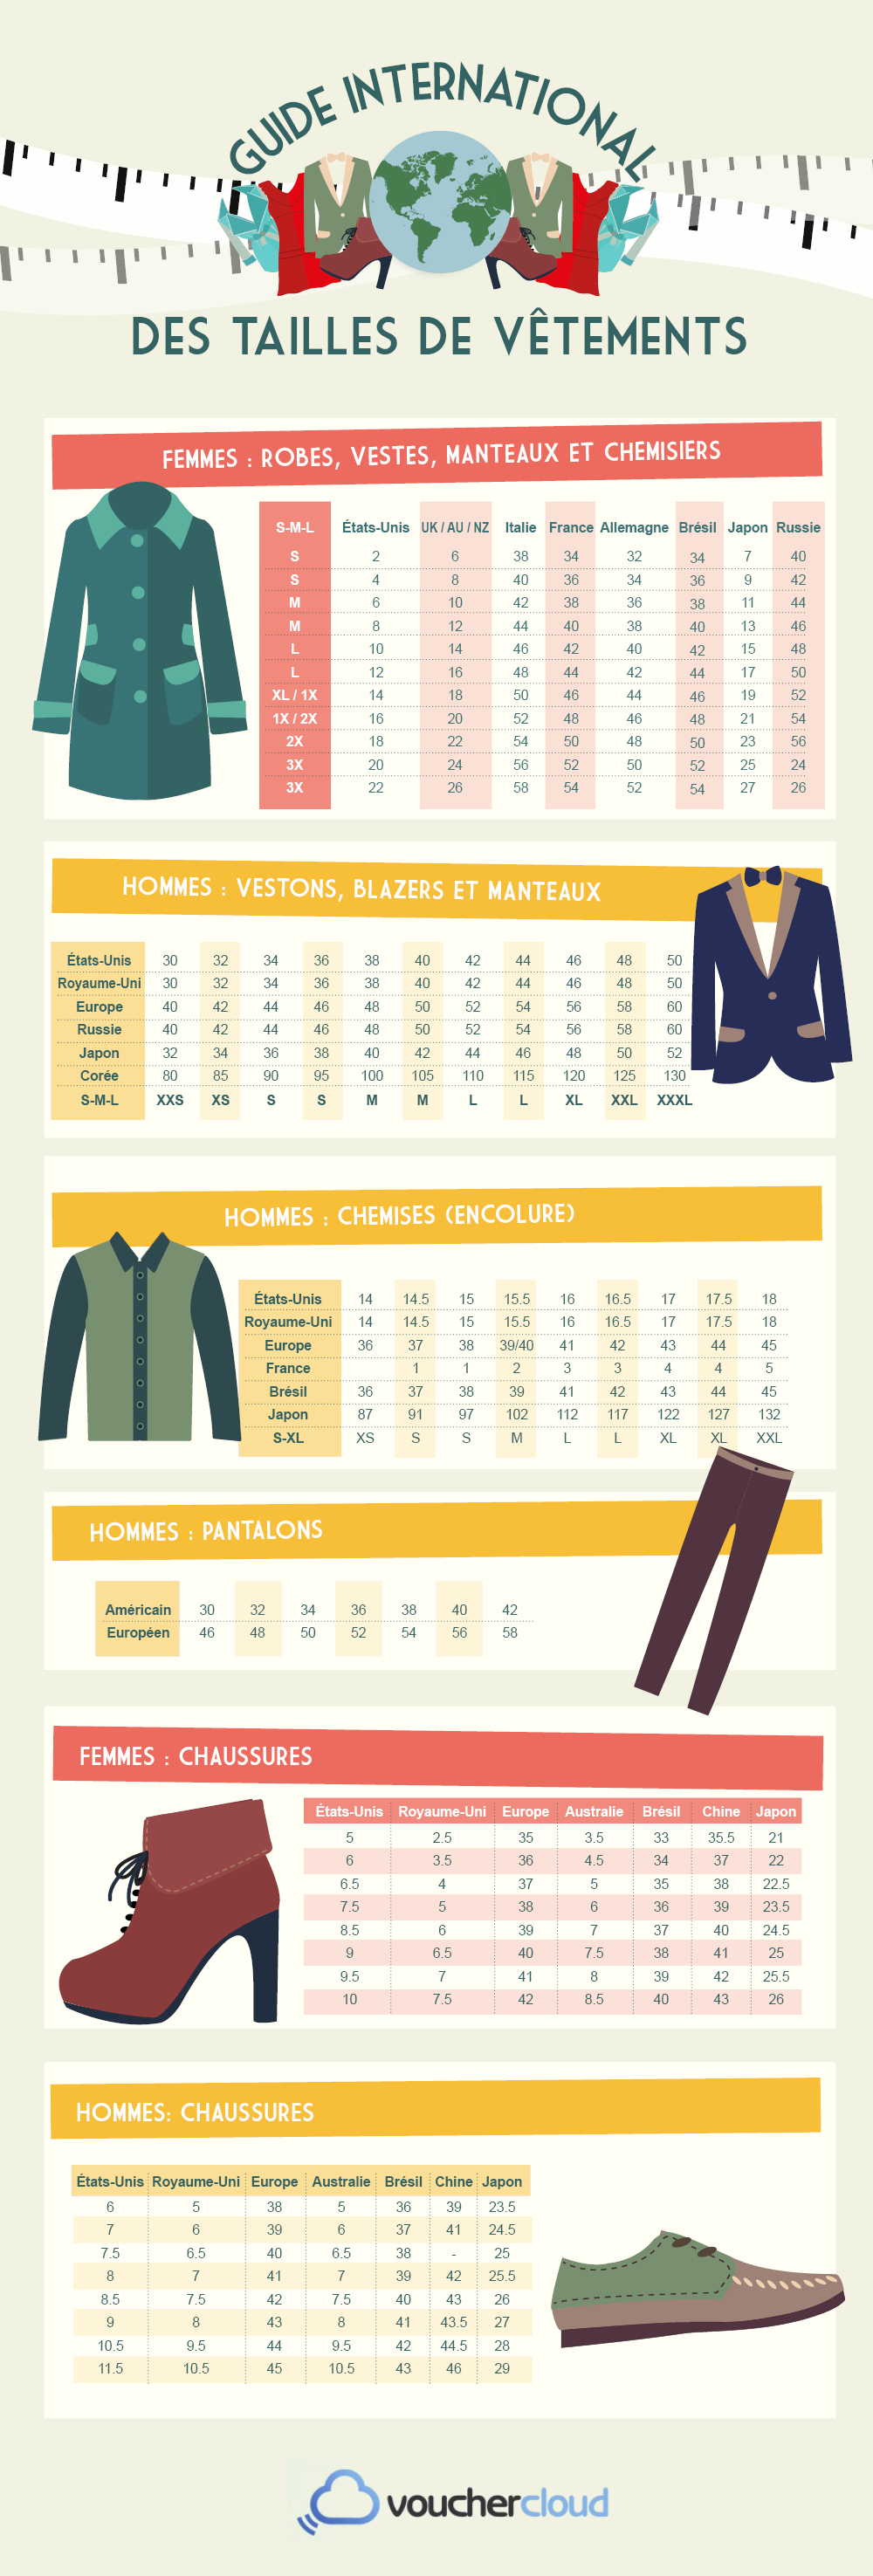 guide international des tailles de vêtements